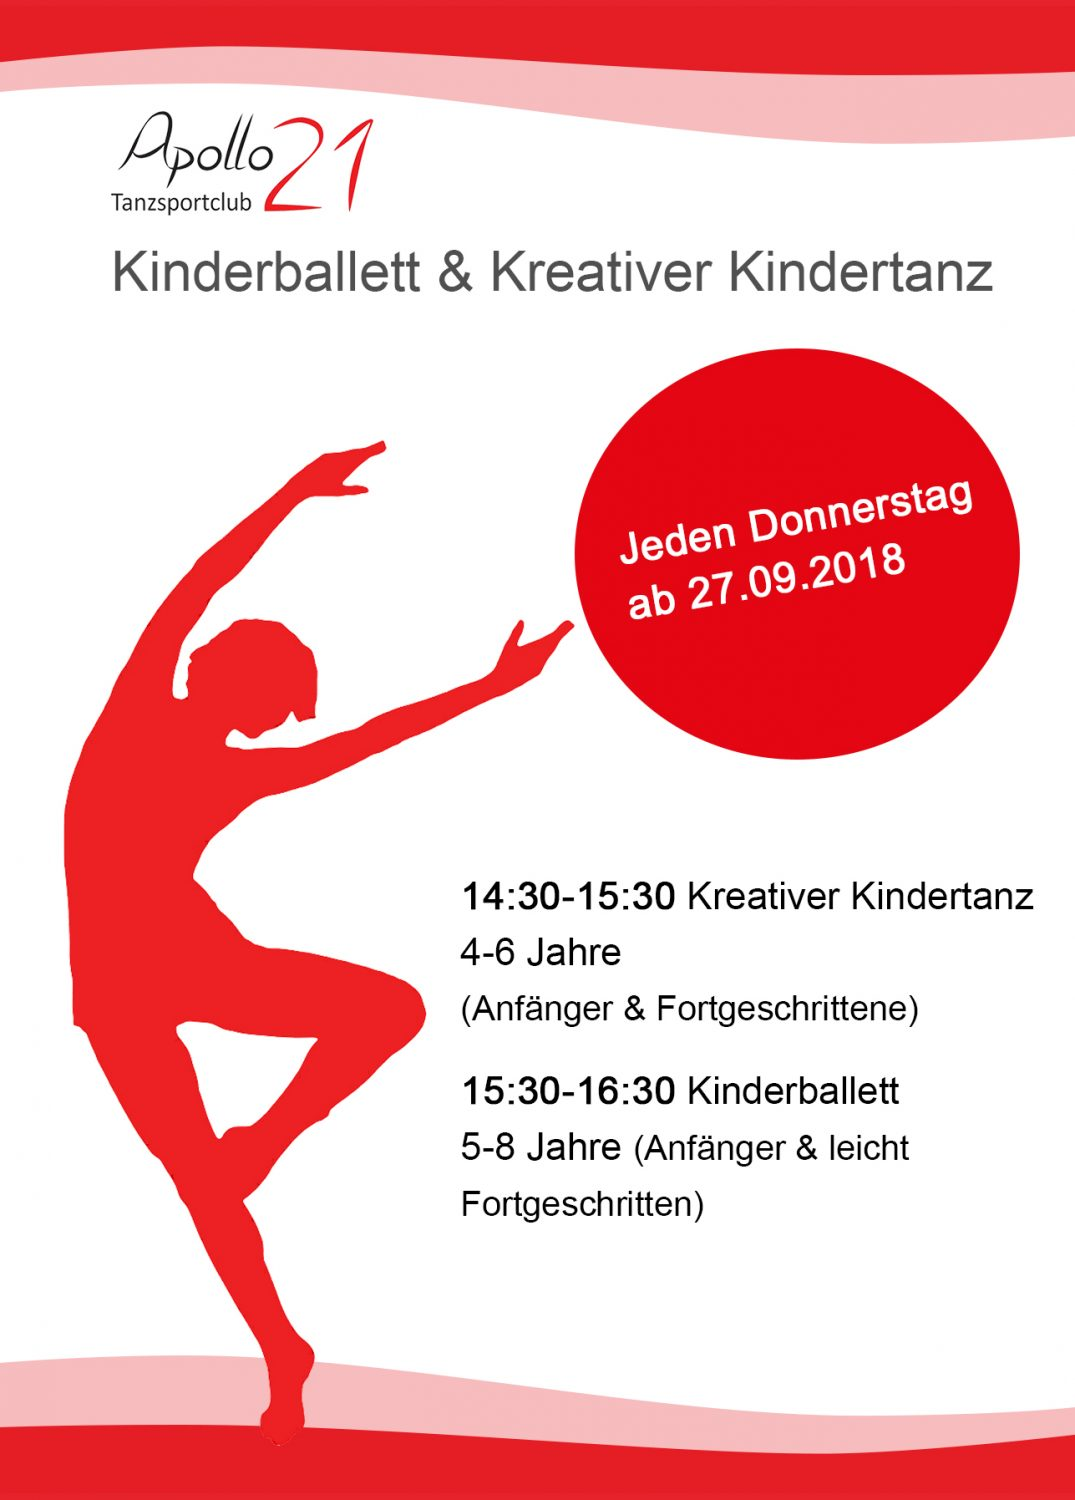 Kindertanzen im Tanzstudio Apollo21 – ab September!